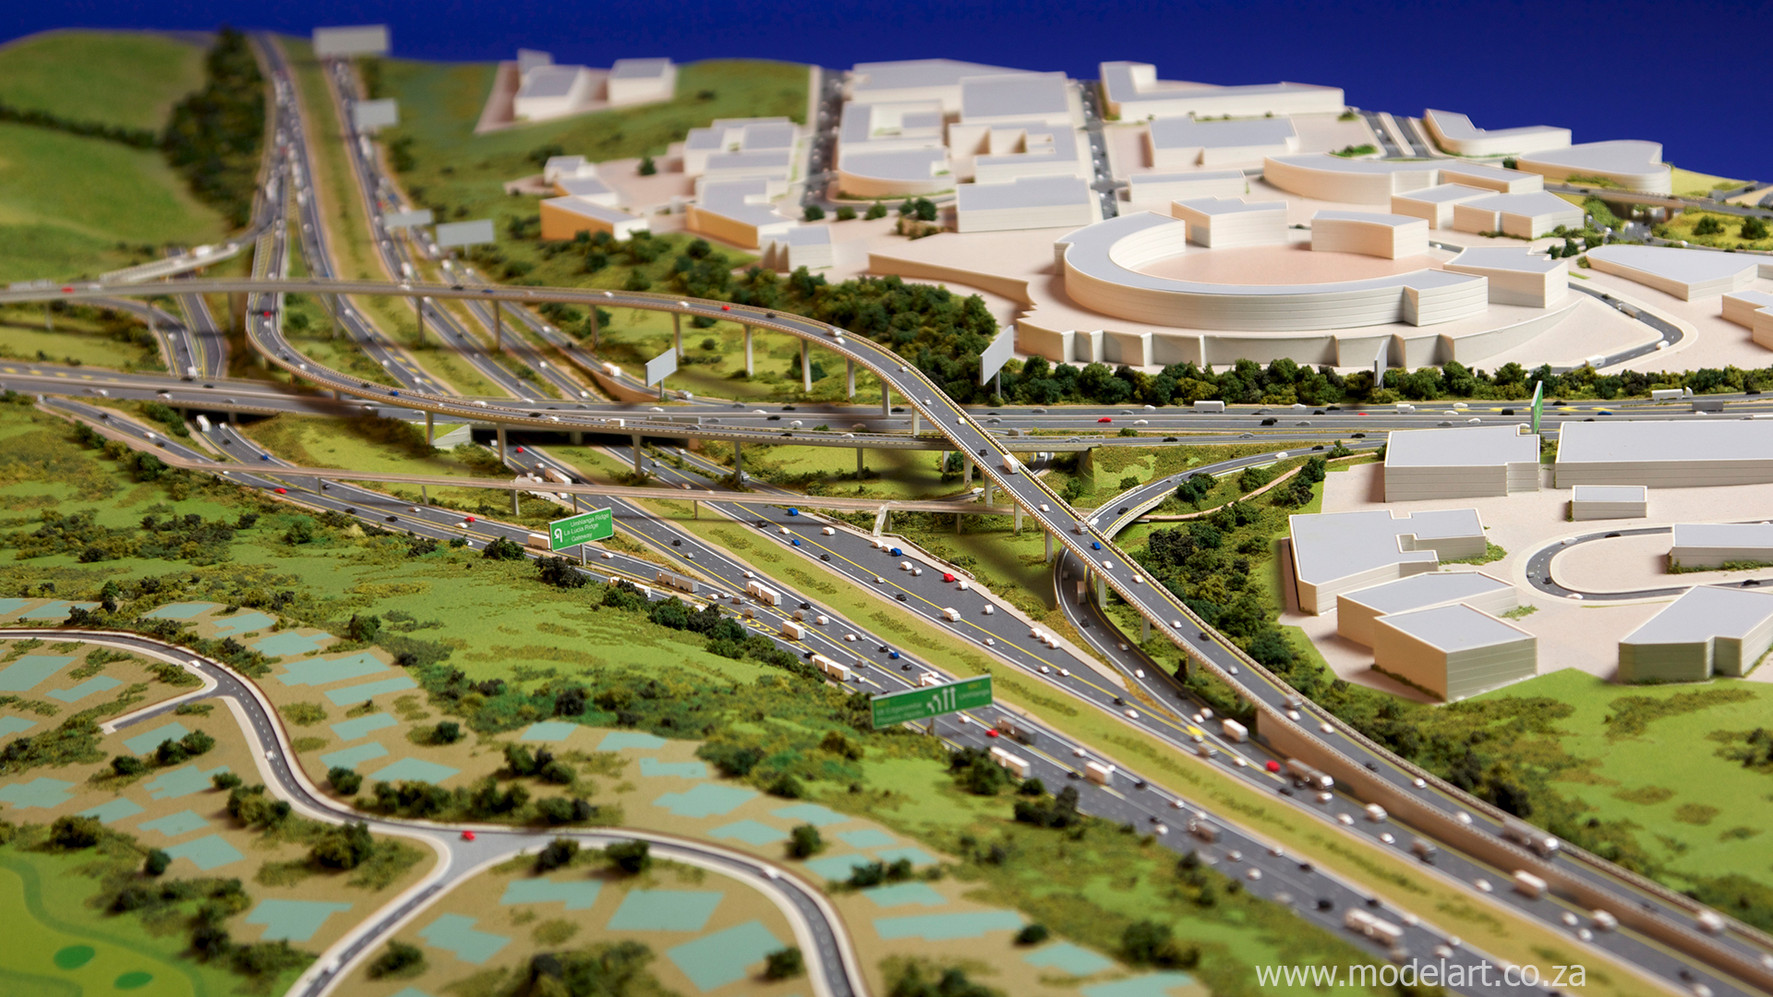 Architectural-Scale-Model-Engineering-Mt Edgecomb Interchange-4